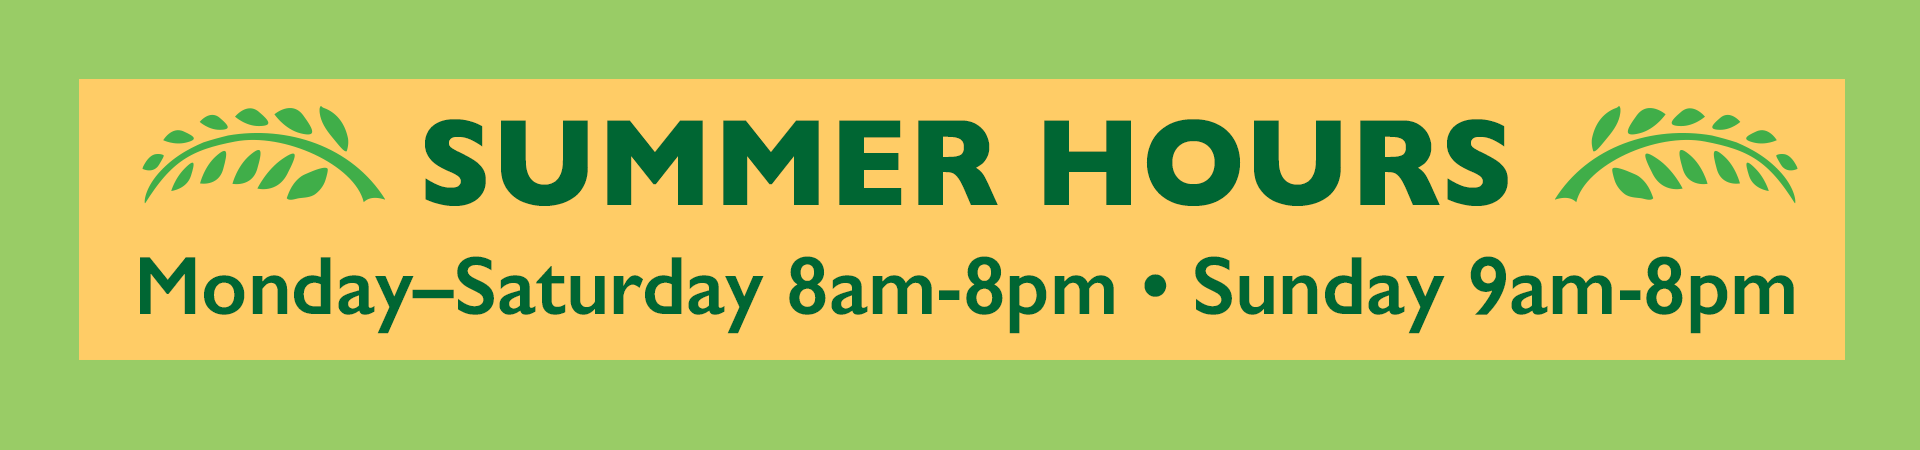 Summer Hours at the Co-op